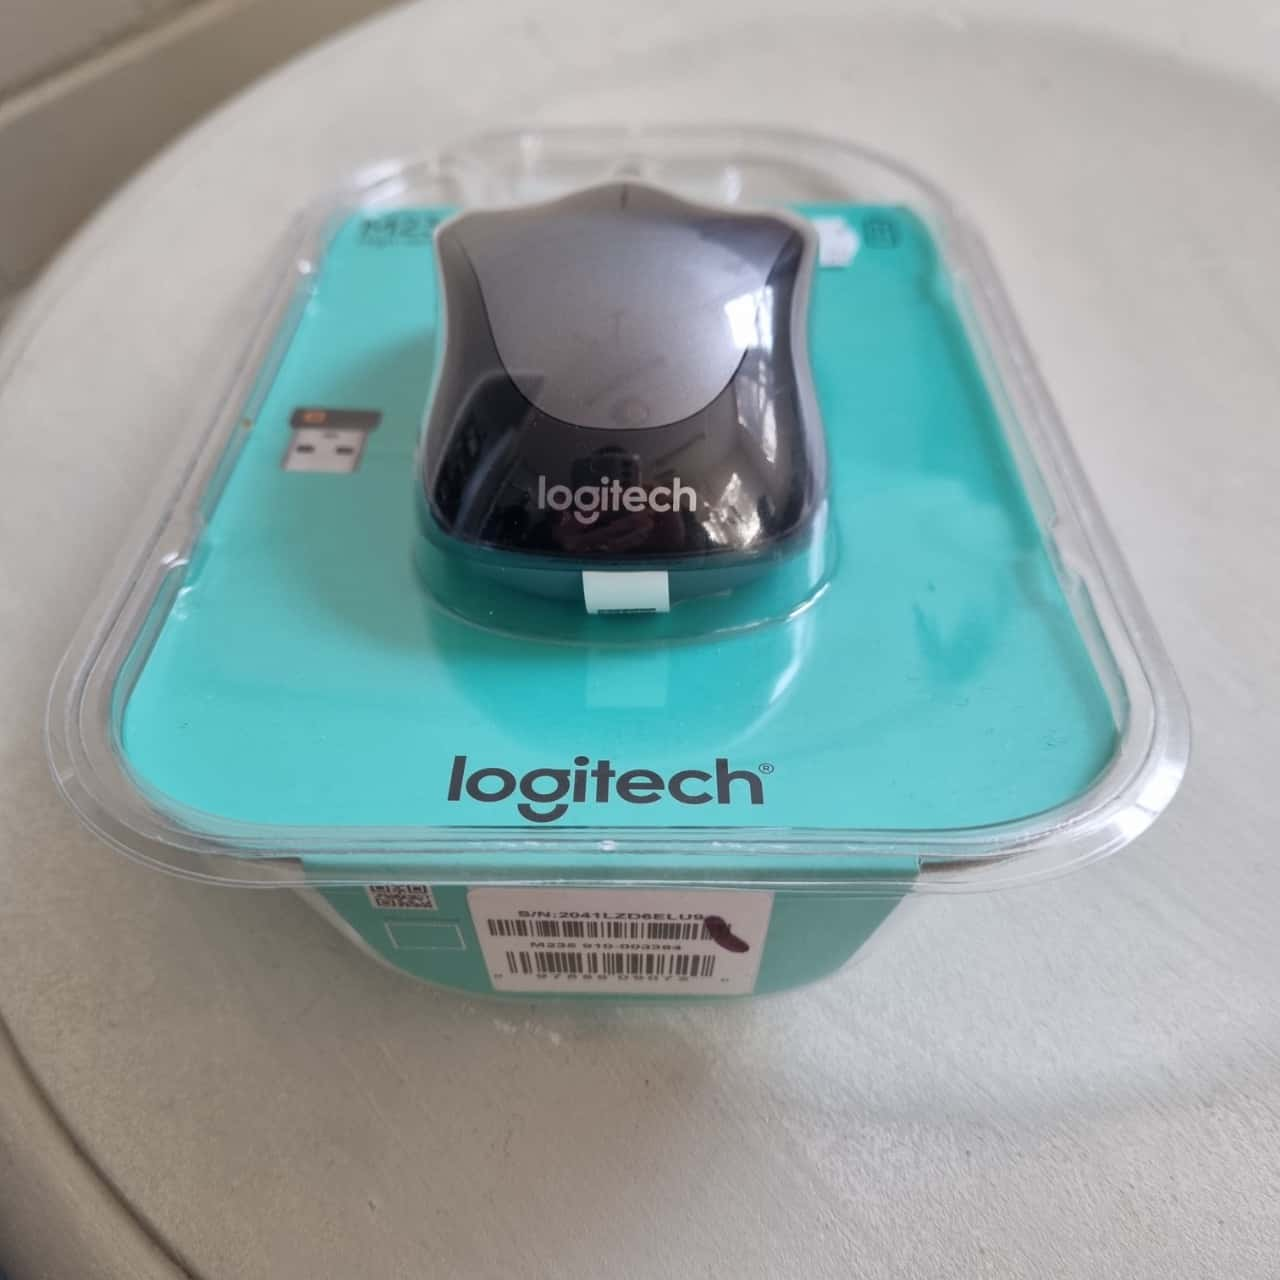 Logitech Mouse - M235 High definition tracking